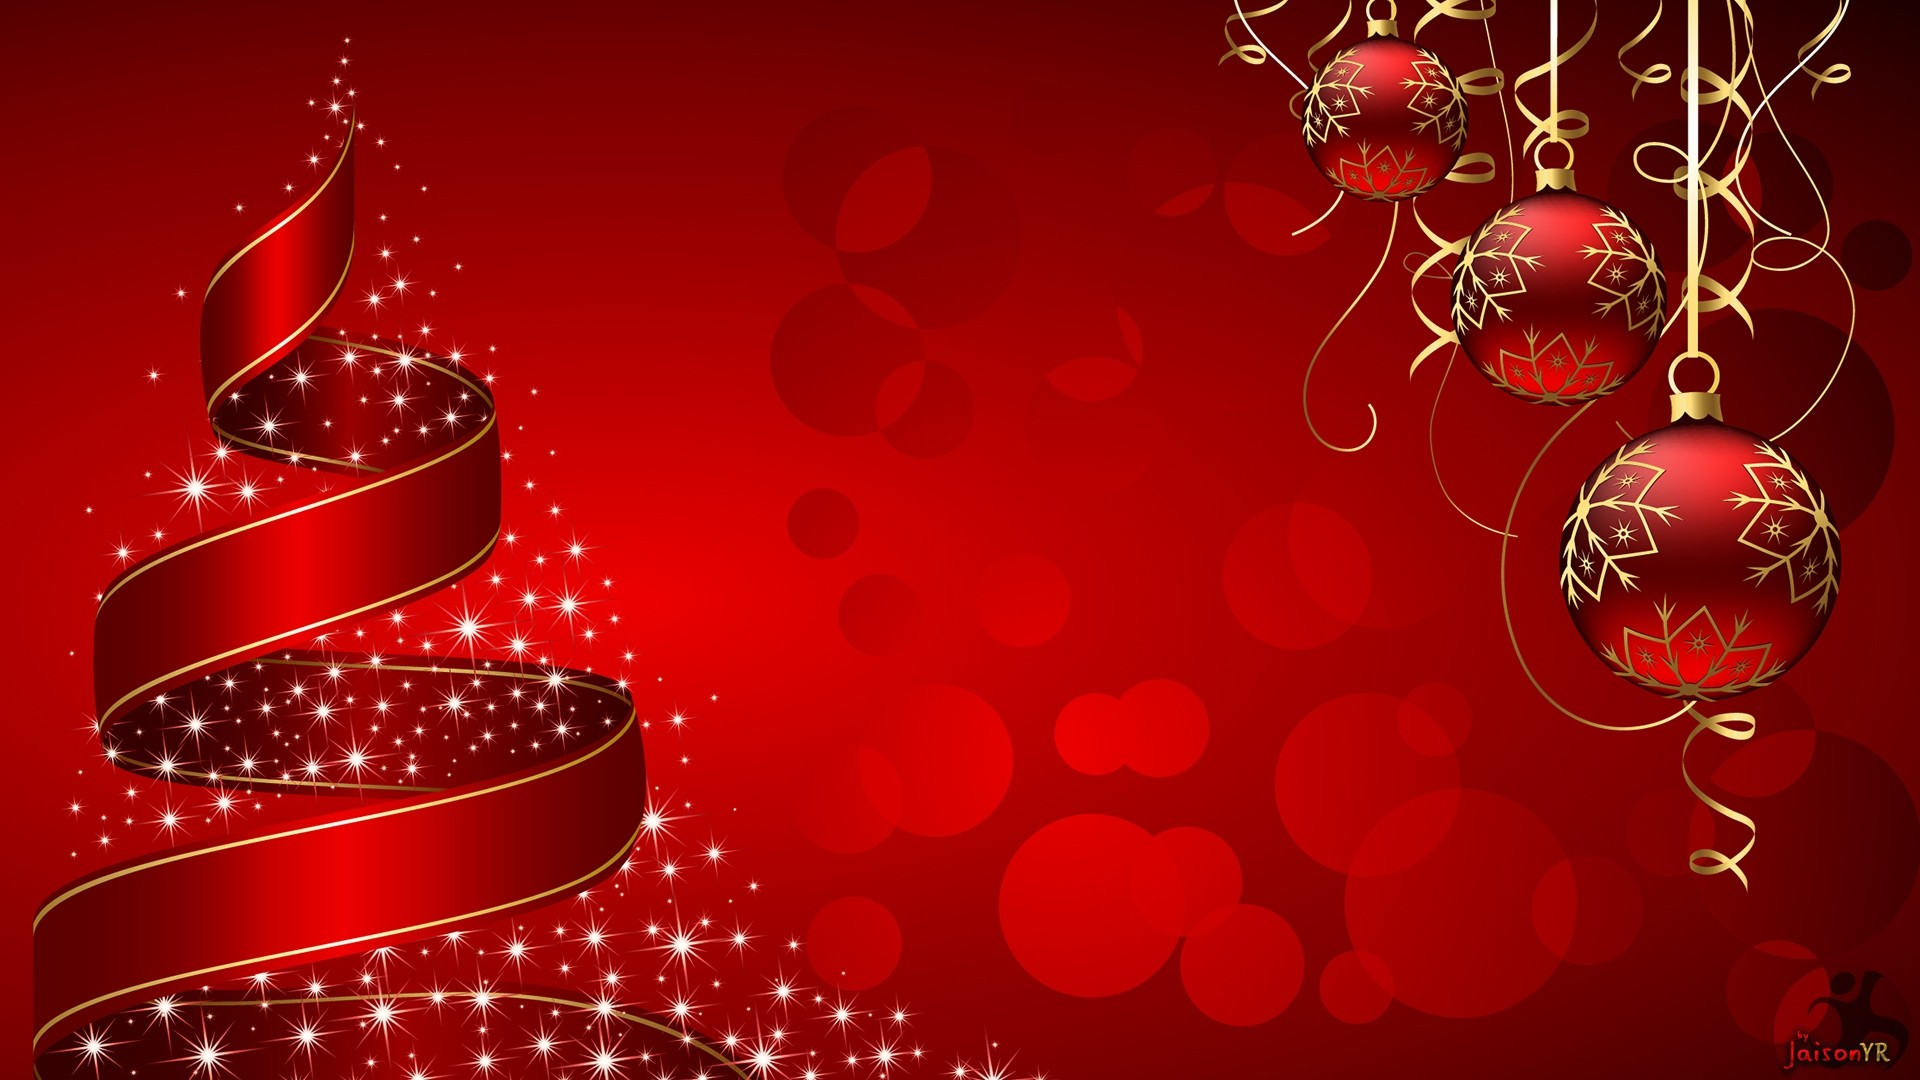 1920x1080 christmas new year wallpaper hd download 2017